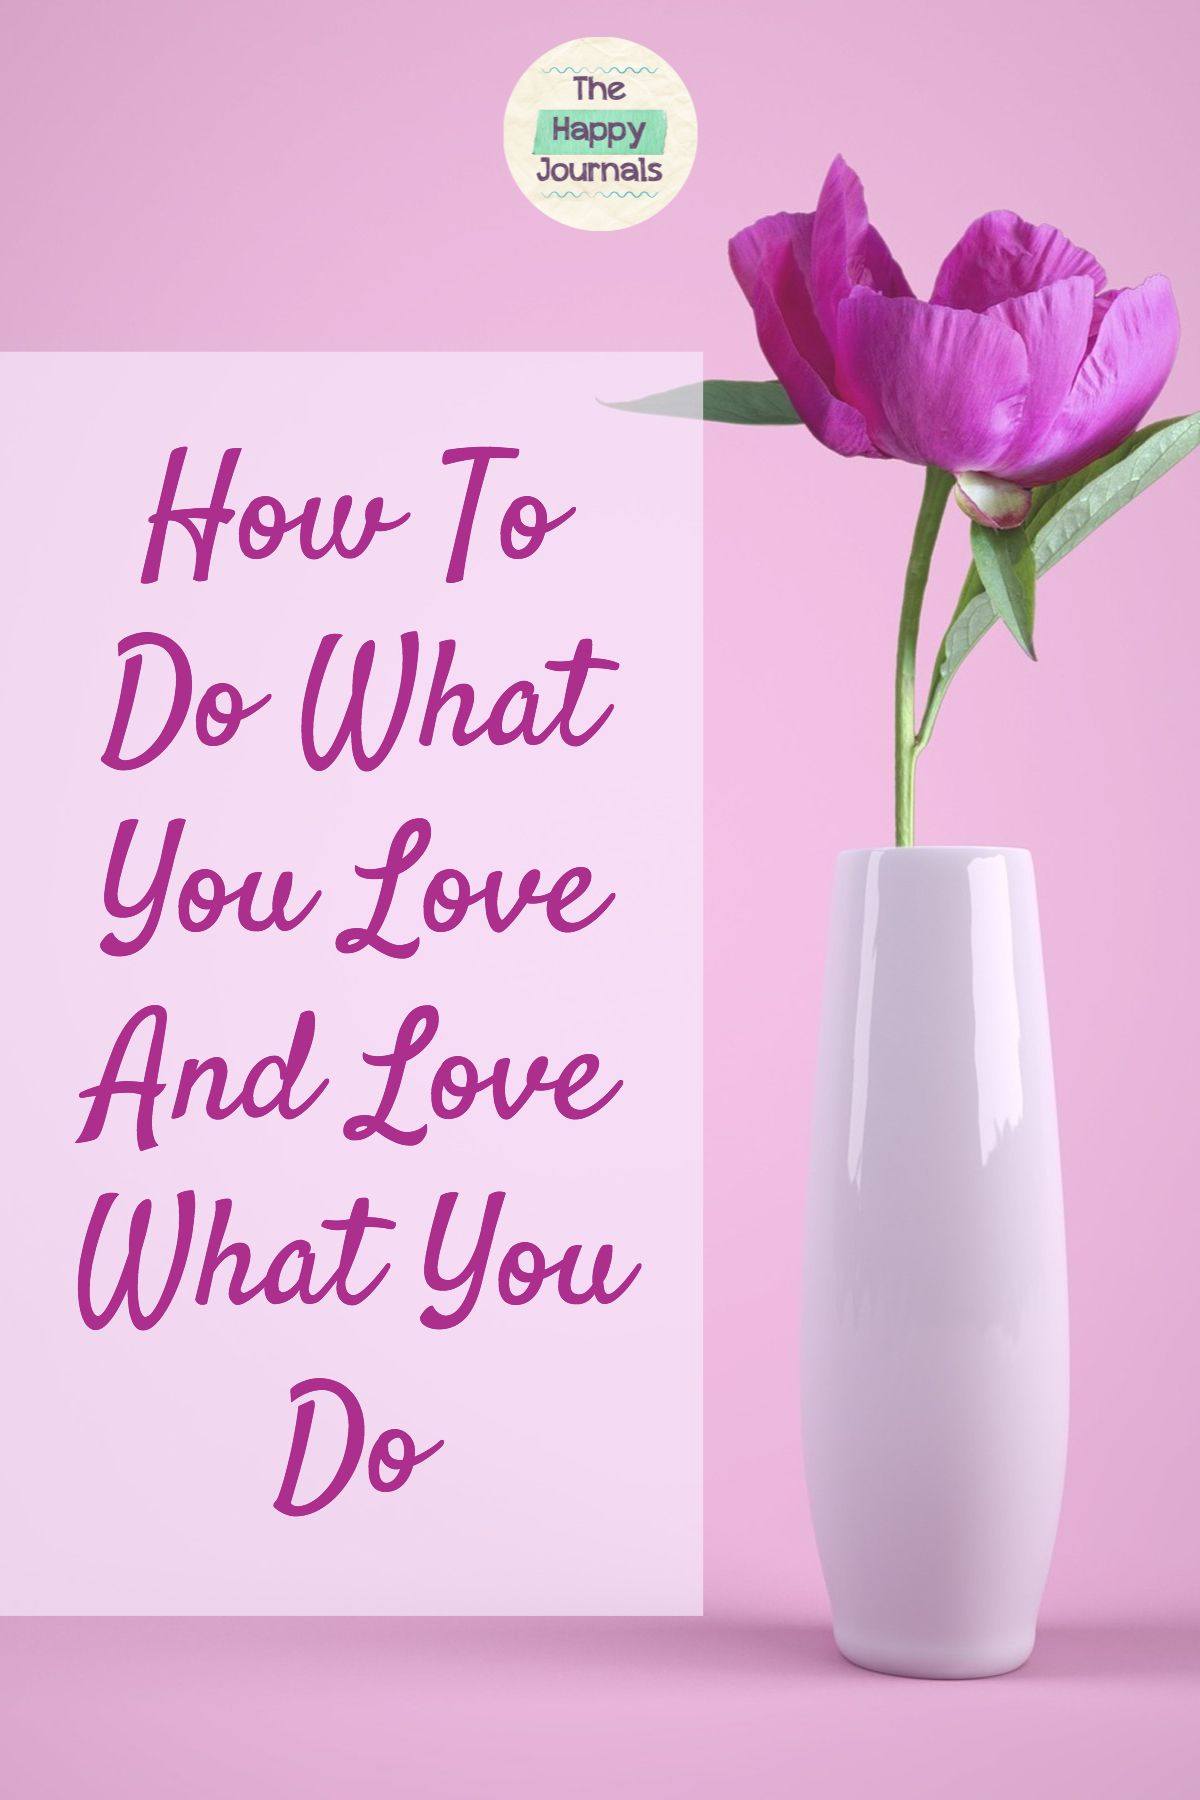 How To Do What You Love And Love What You Do